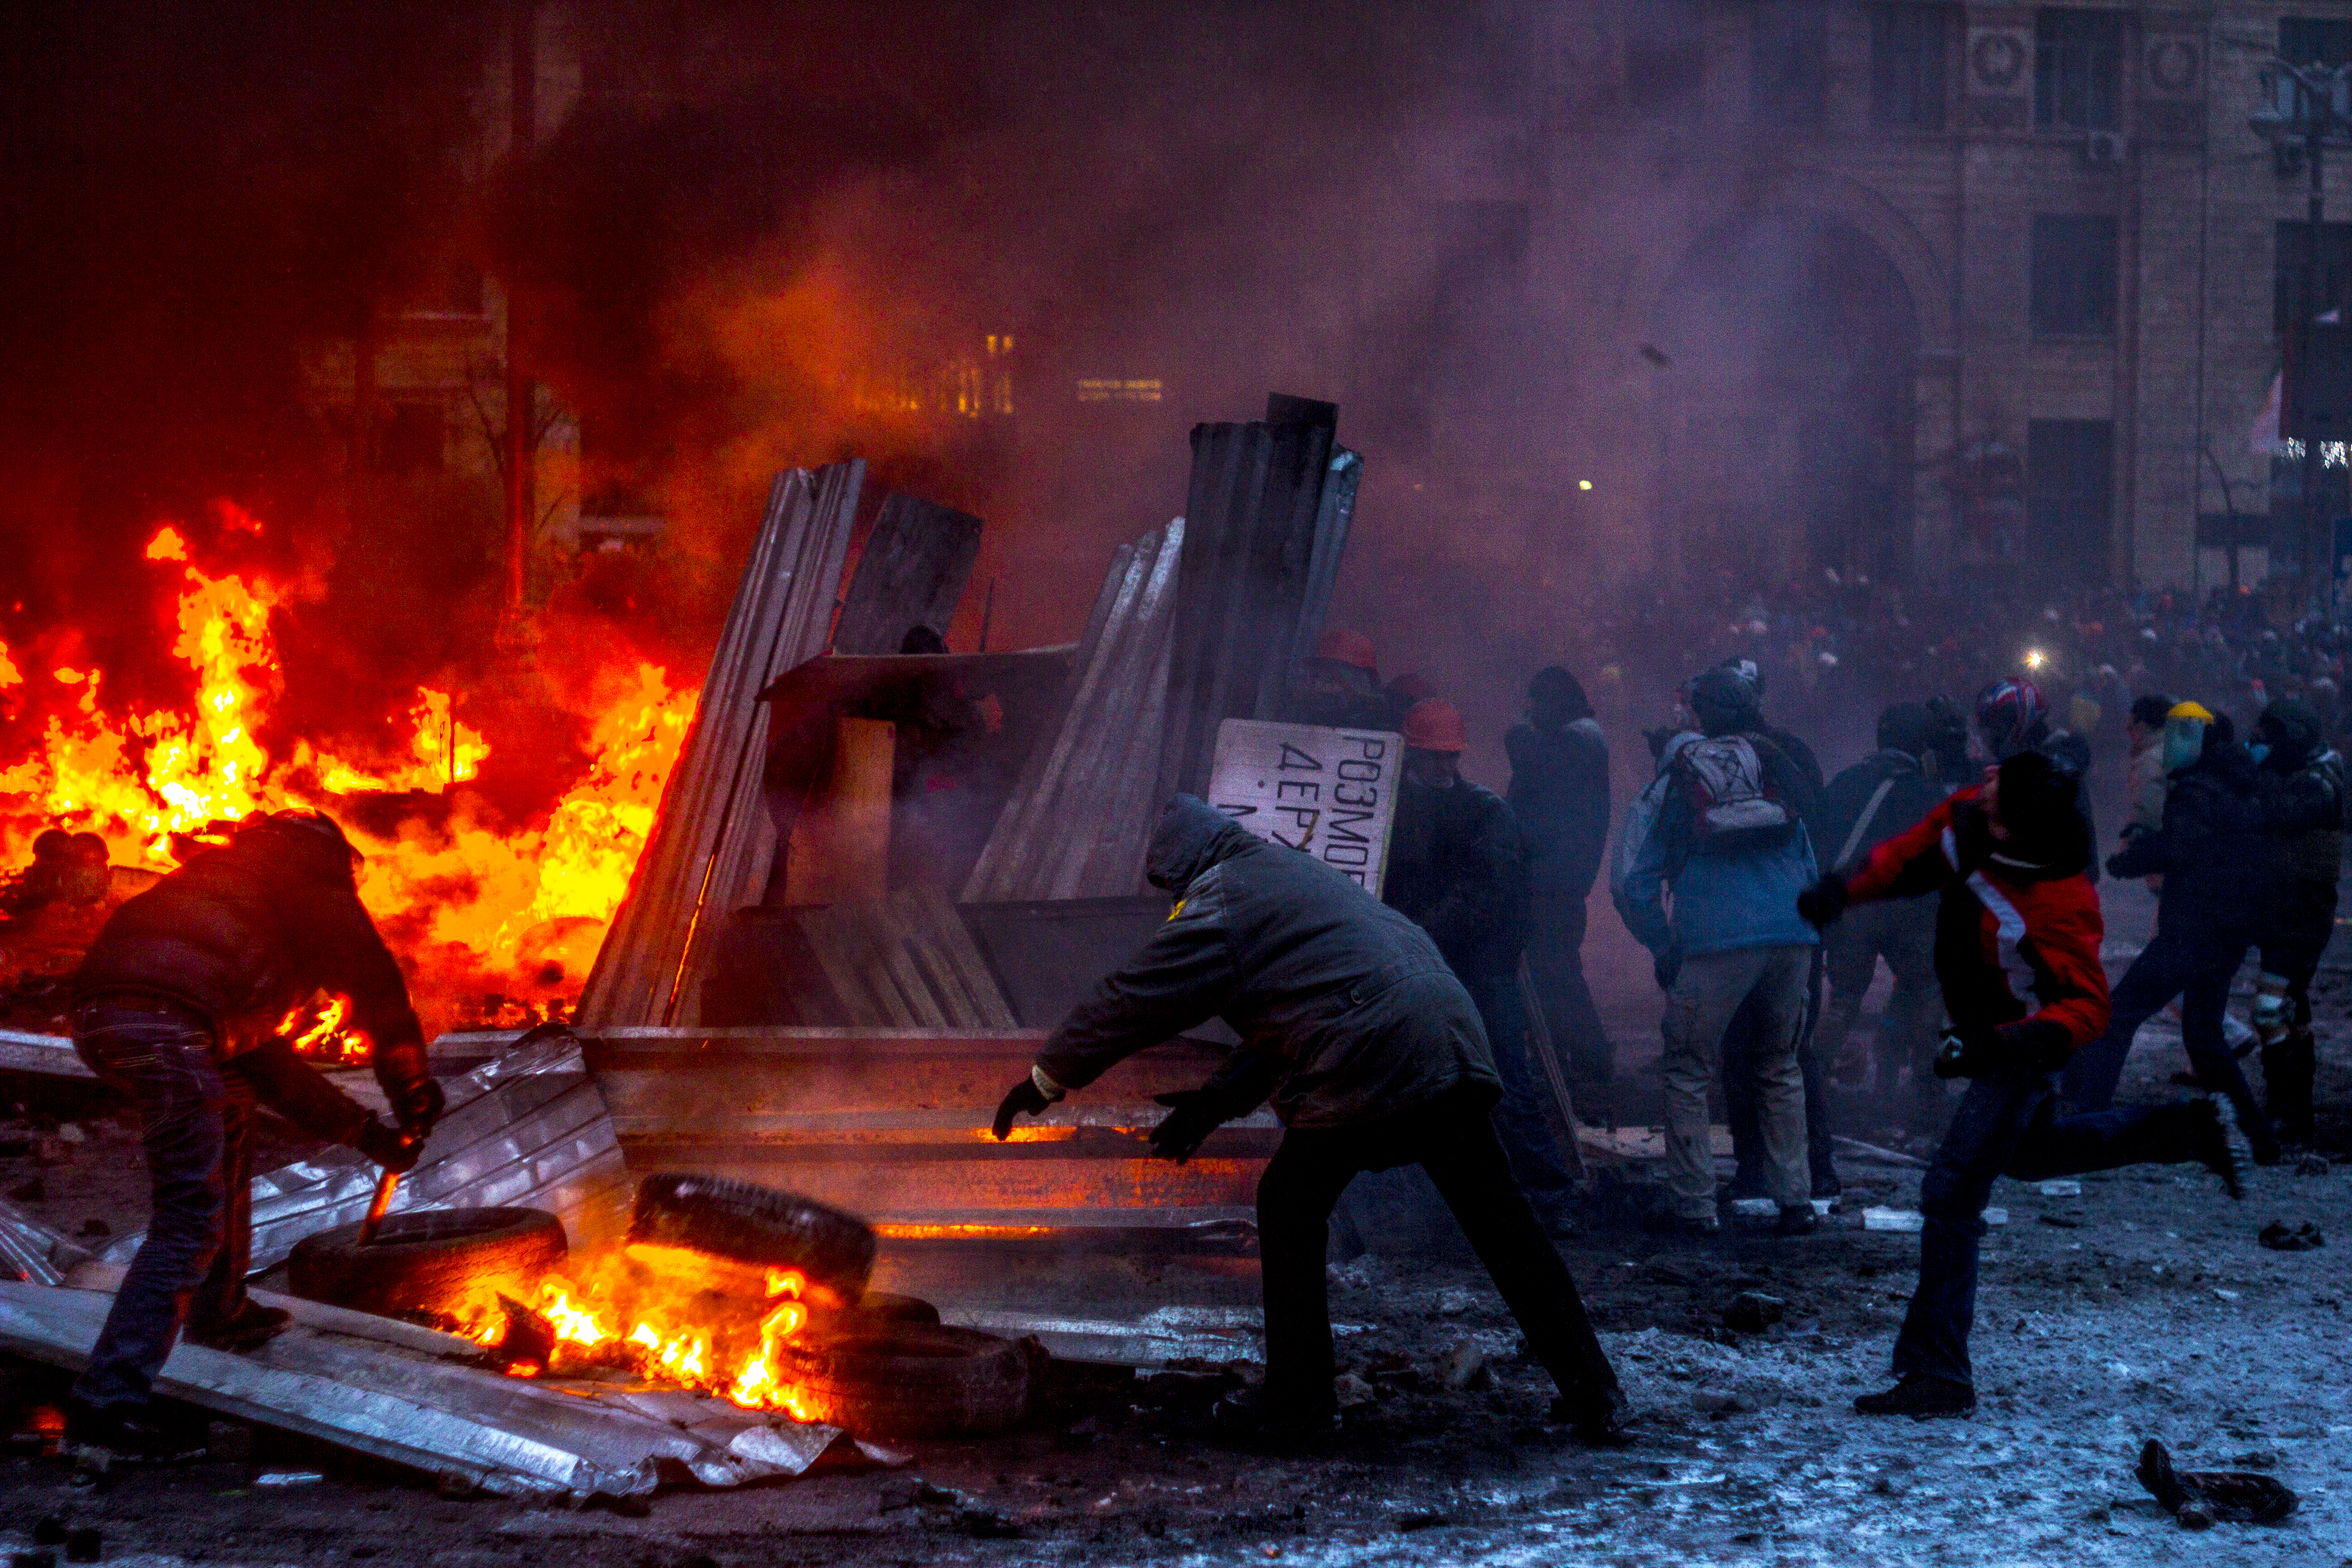 Stephen-Cohen-Western-Recklessness-Could-Spark-'a-New-Cold-War-Divide'-in-Ukraine